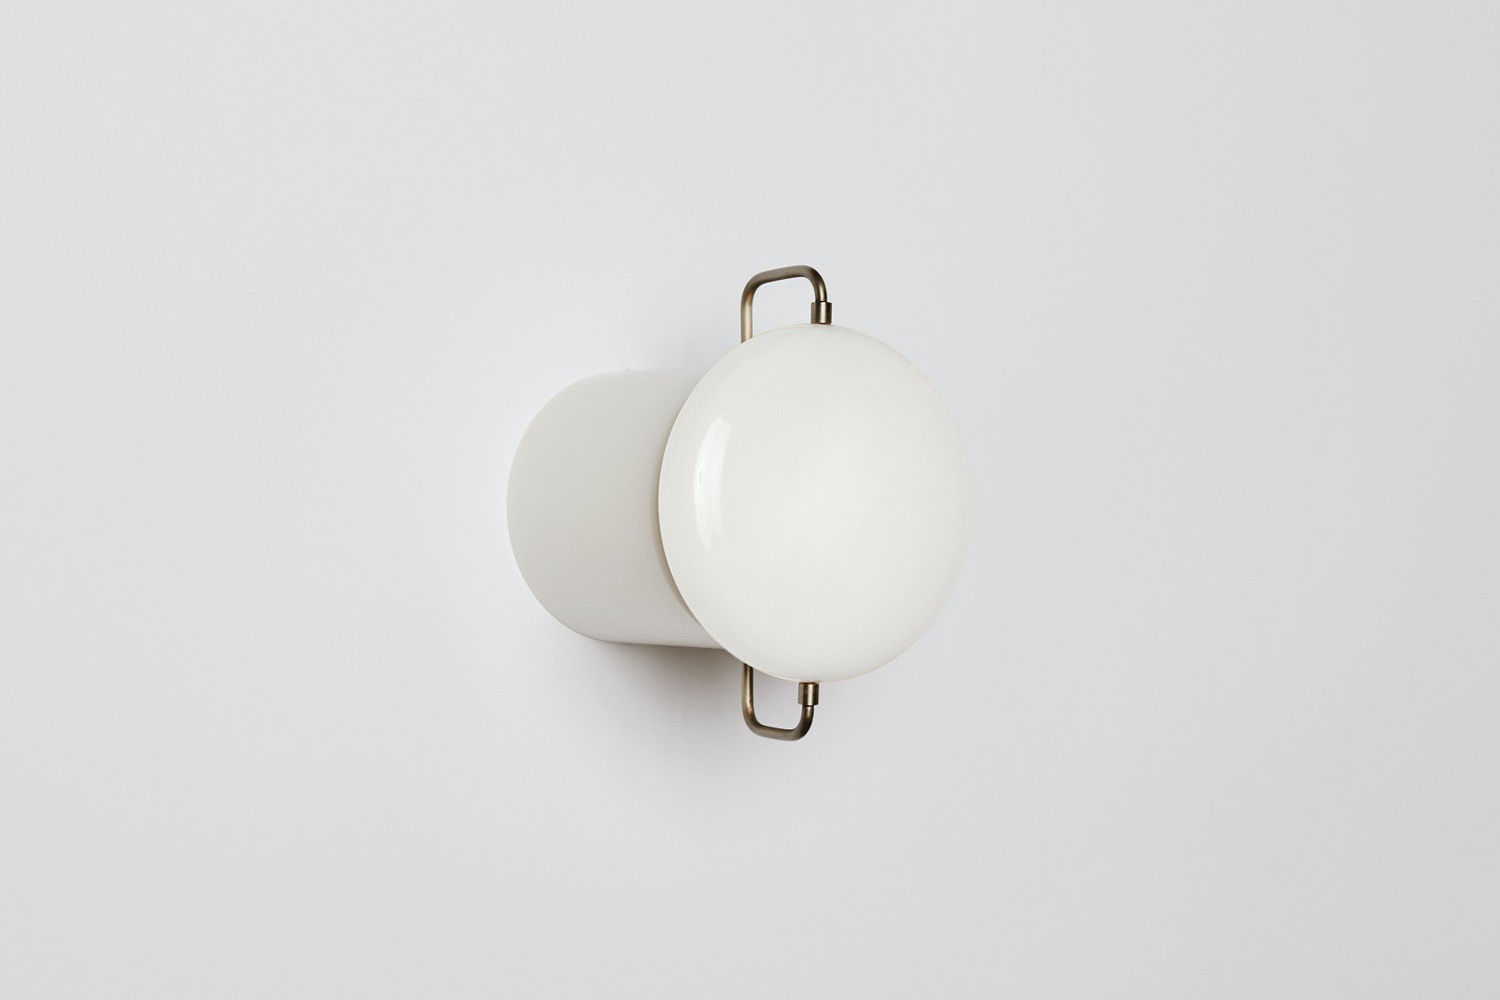 10 Easy Pieces Classic Modern Bath Sconces The Workstead Park I Light is \$\1,650 directly from Workstead.